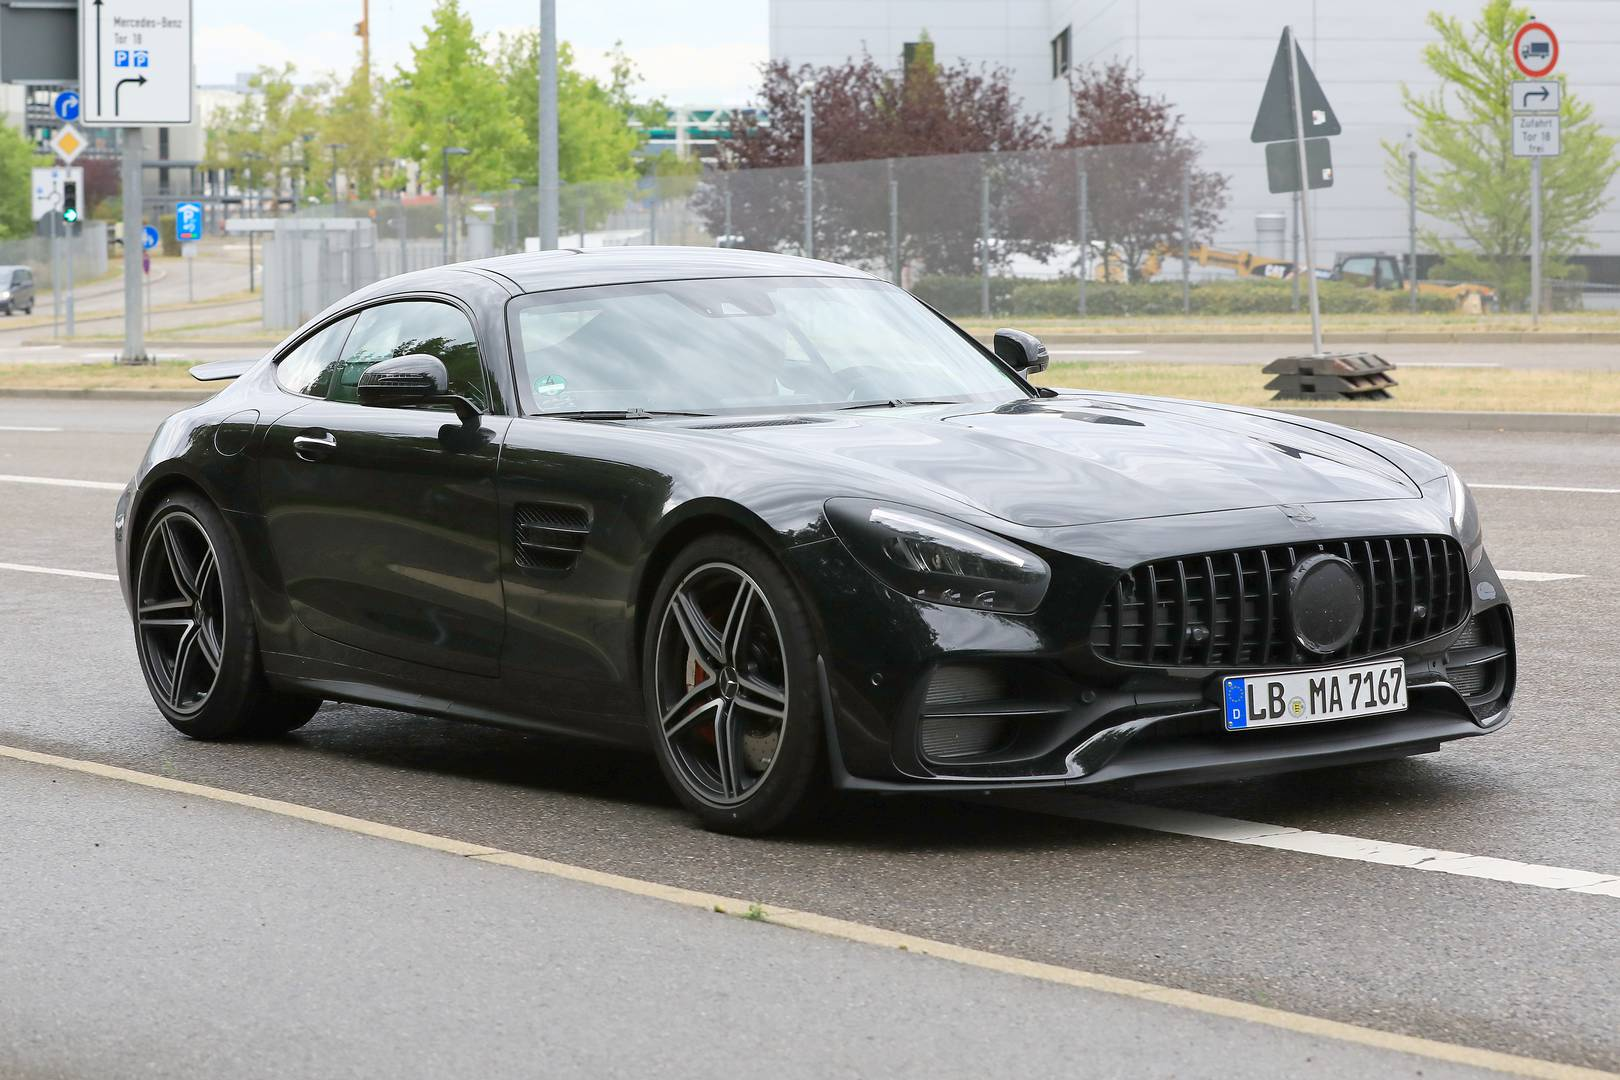 2019 mercedes amg gt facelift first spy shots gtspirit. Black Bedroom Furniture Sets. Home Design Ideas